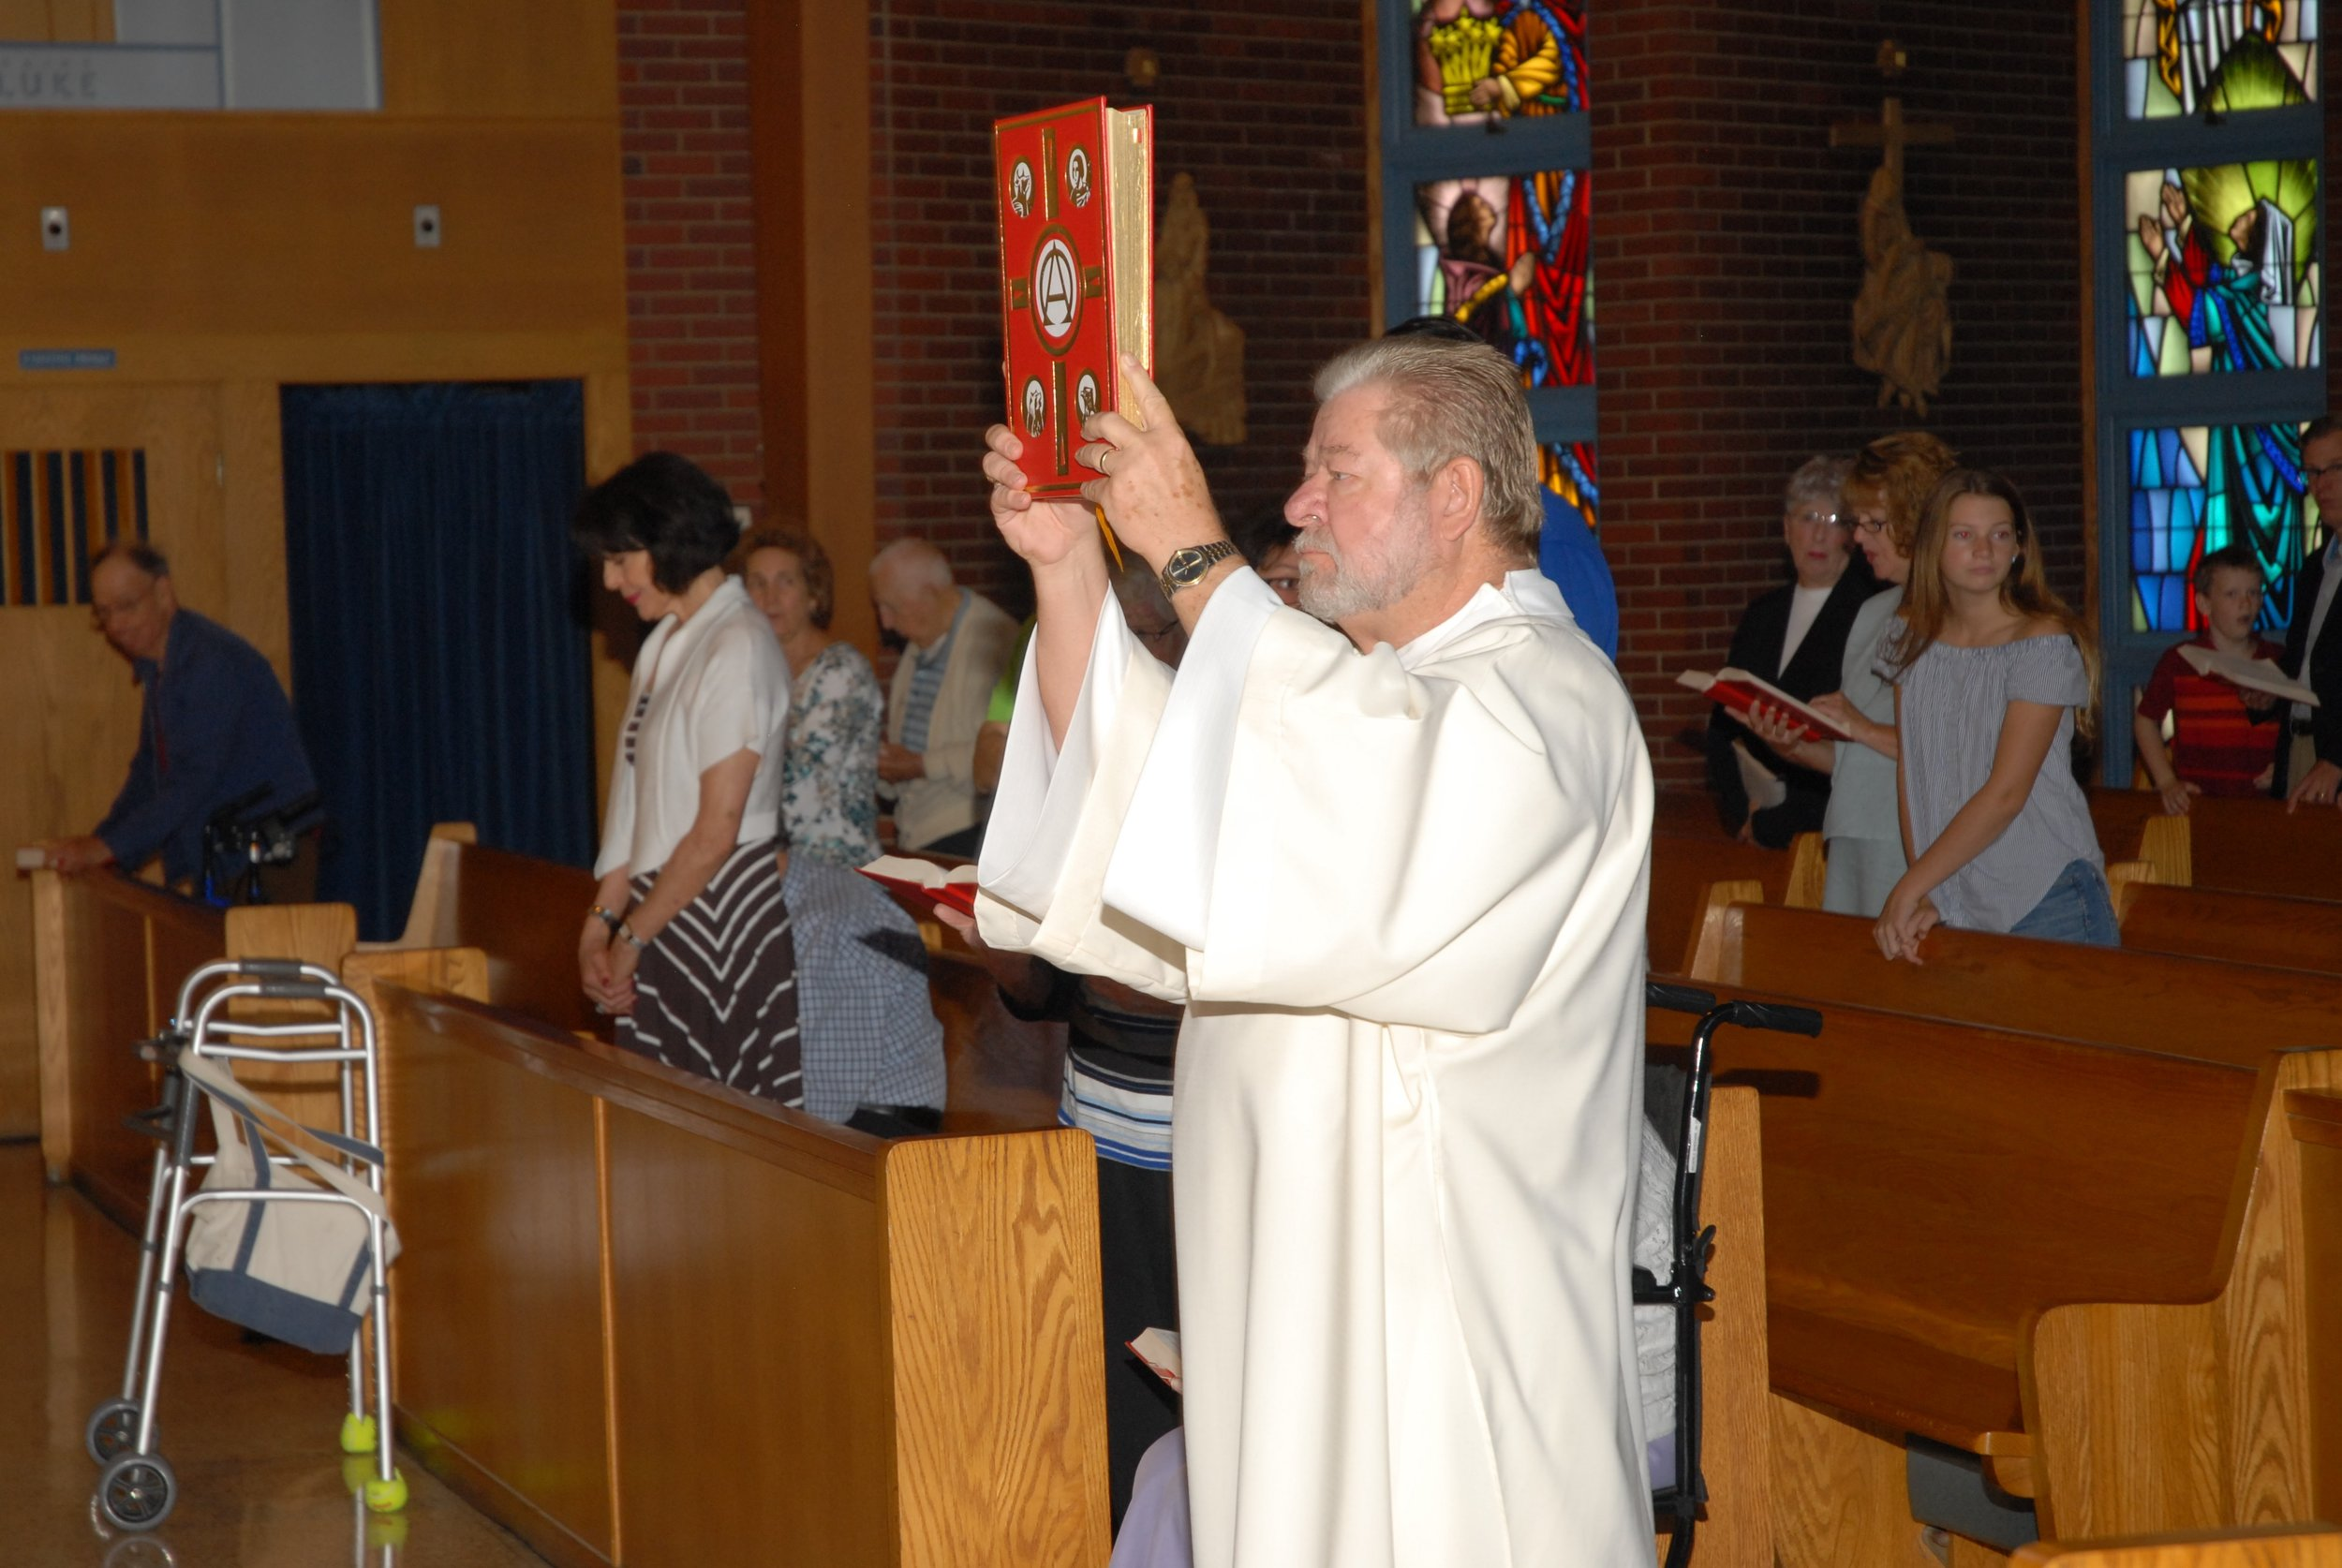 Deacon John Dowd carries the Book of the Gospel.